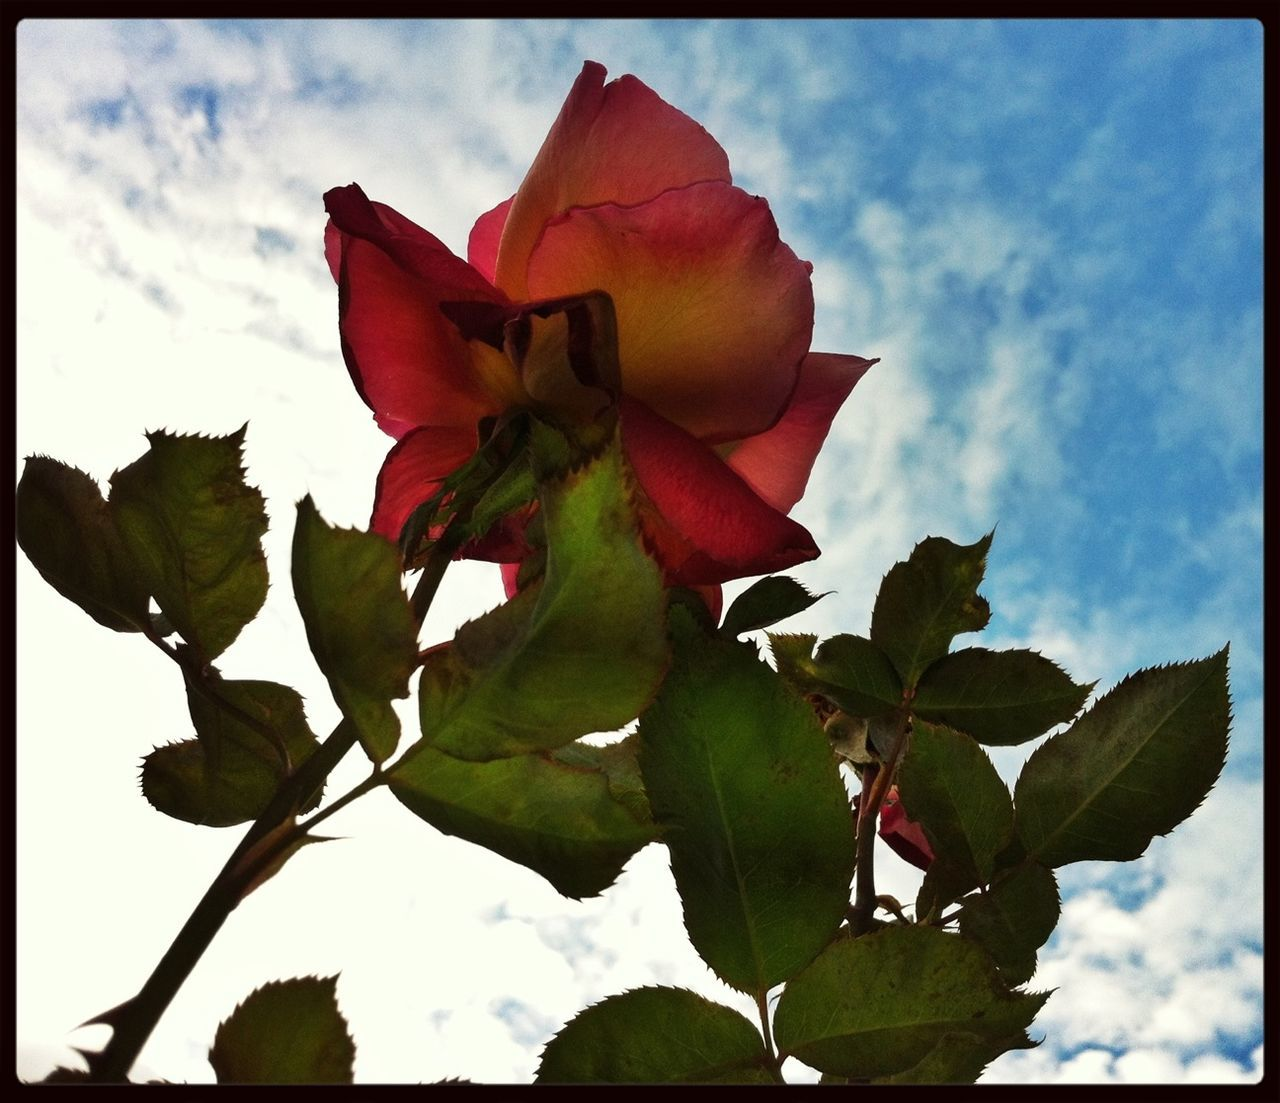 Low Angle View Of Rose